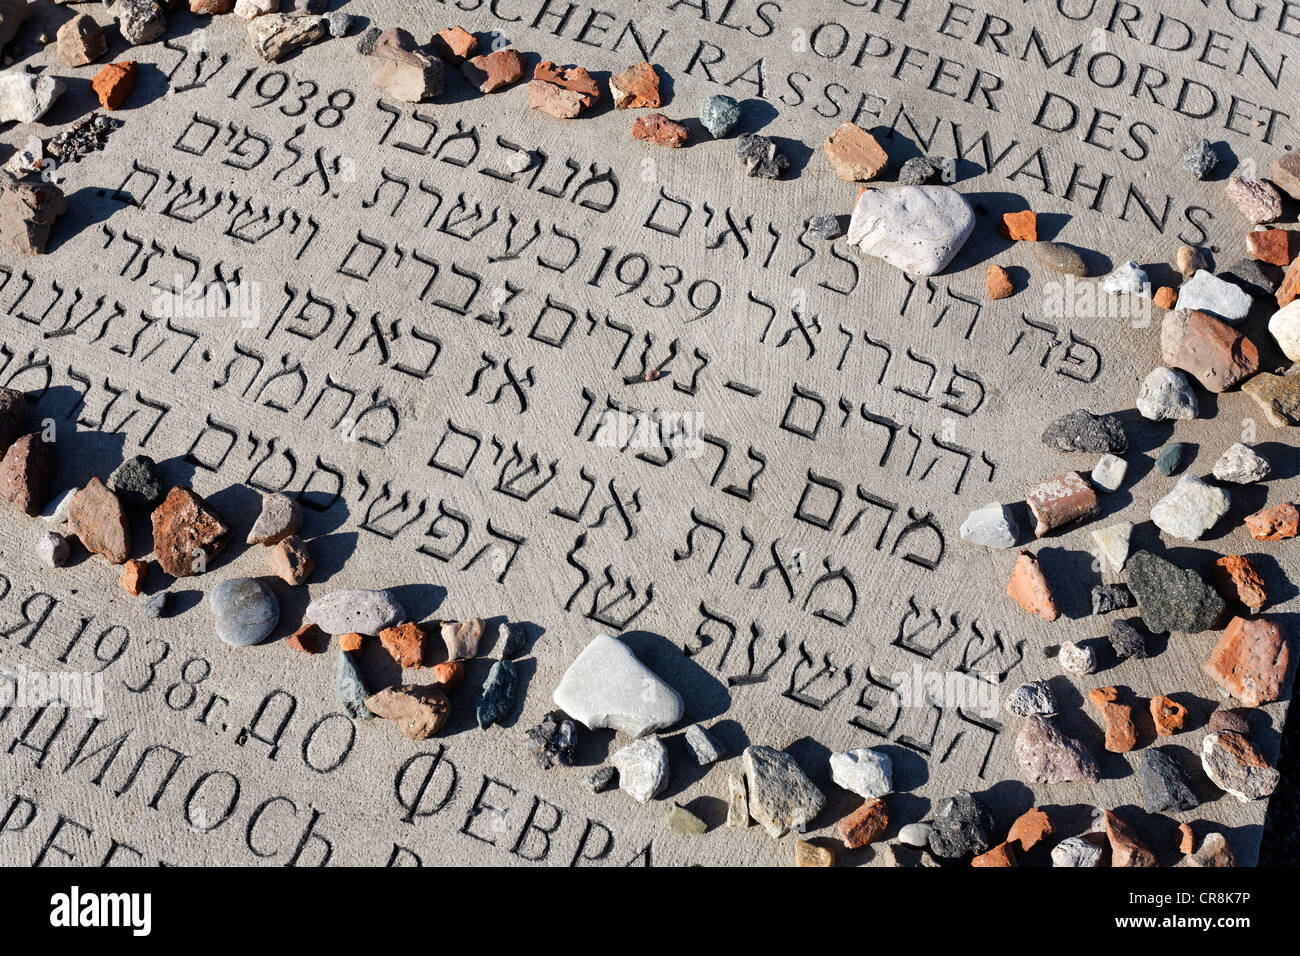 Memorial stone with an inscription in Hebrew on the site of the Jewish special camp, Buchenwald memorial, former - Stock Image